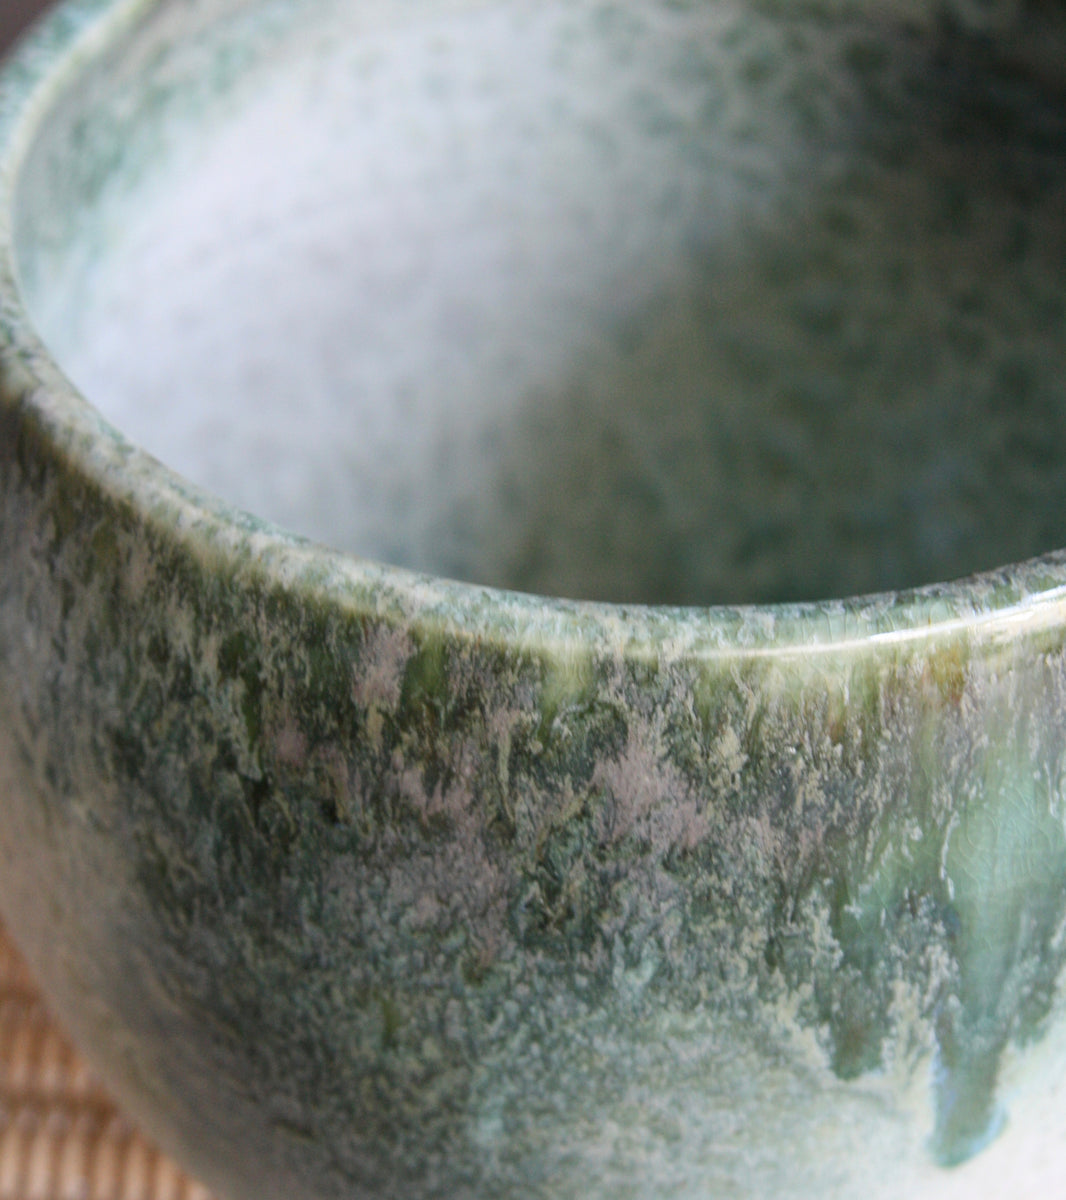 Medium Bell Shaped Planter <br> White & Green Glaze